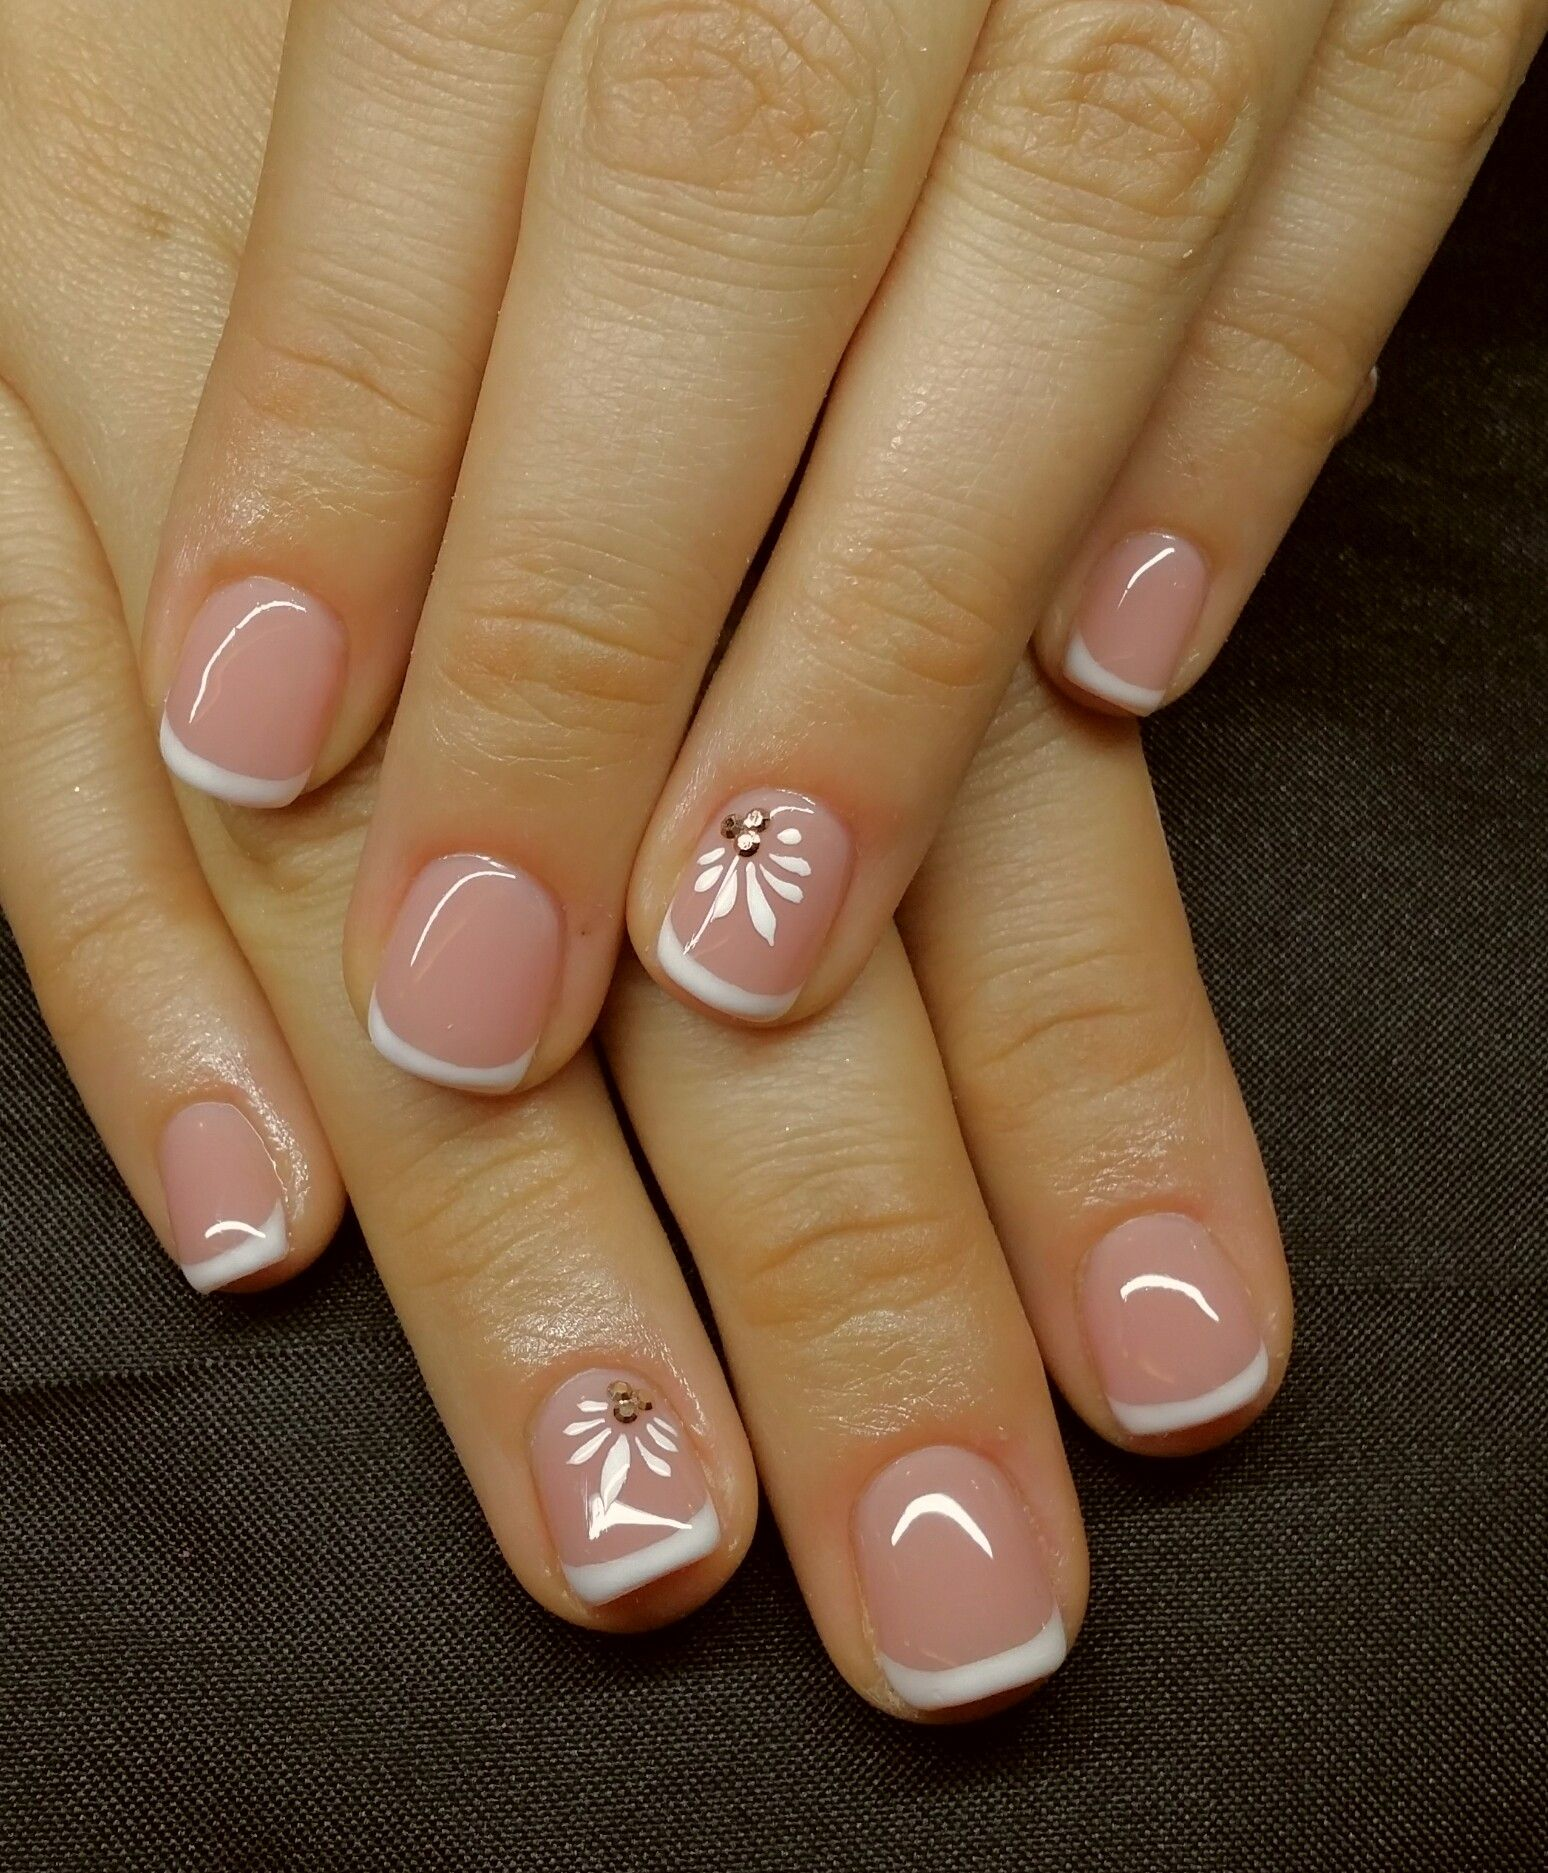 Keptalalat A Kovetkezore Francia Gellakk Sunflower Nails Sunflower Nail Art Spring Nails